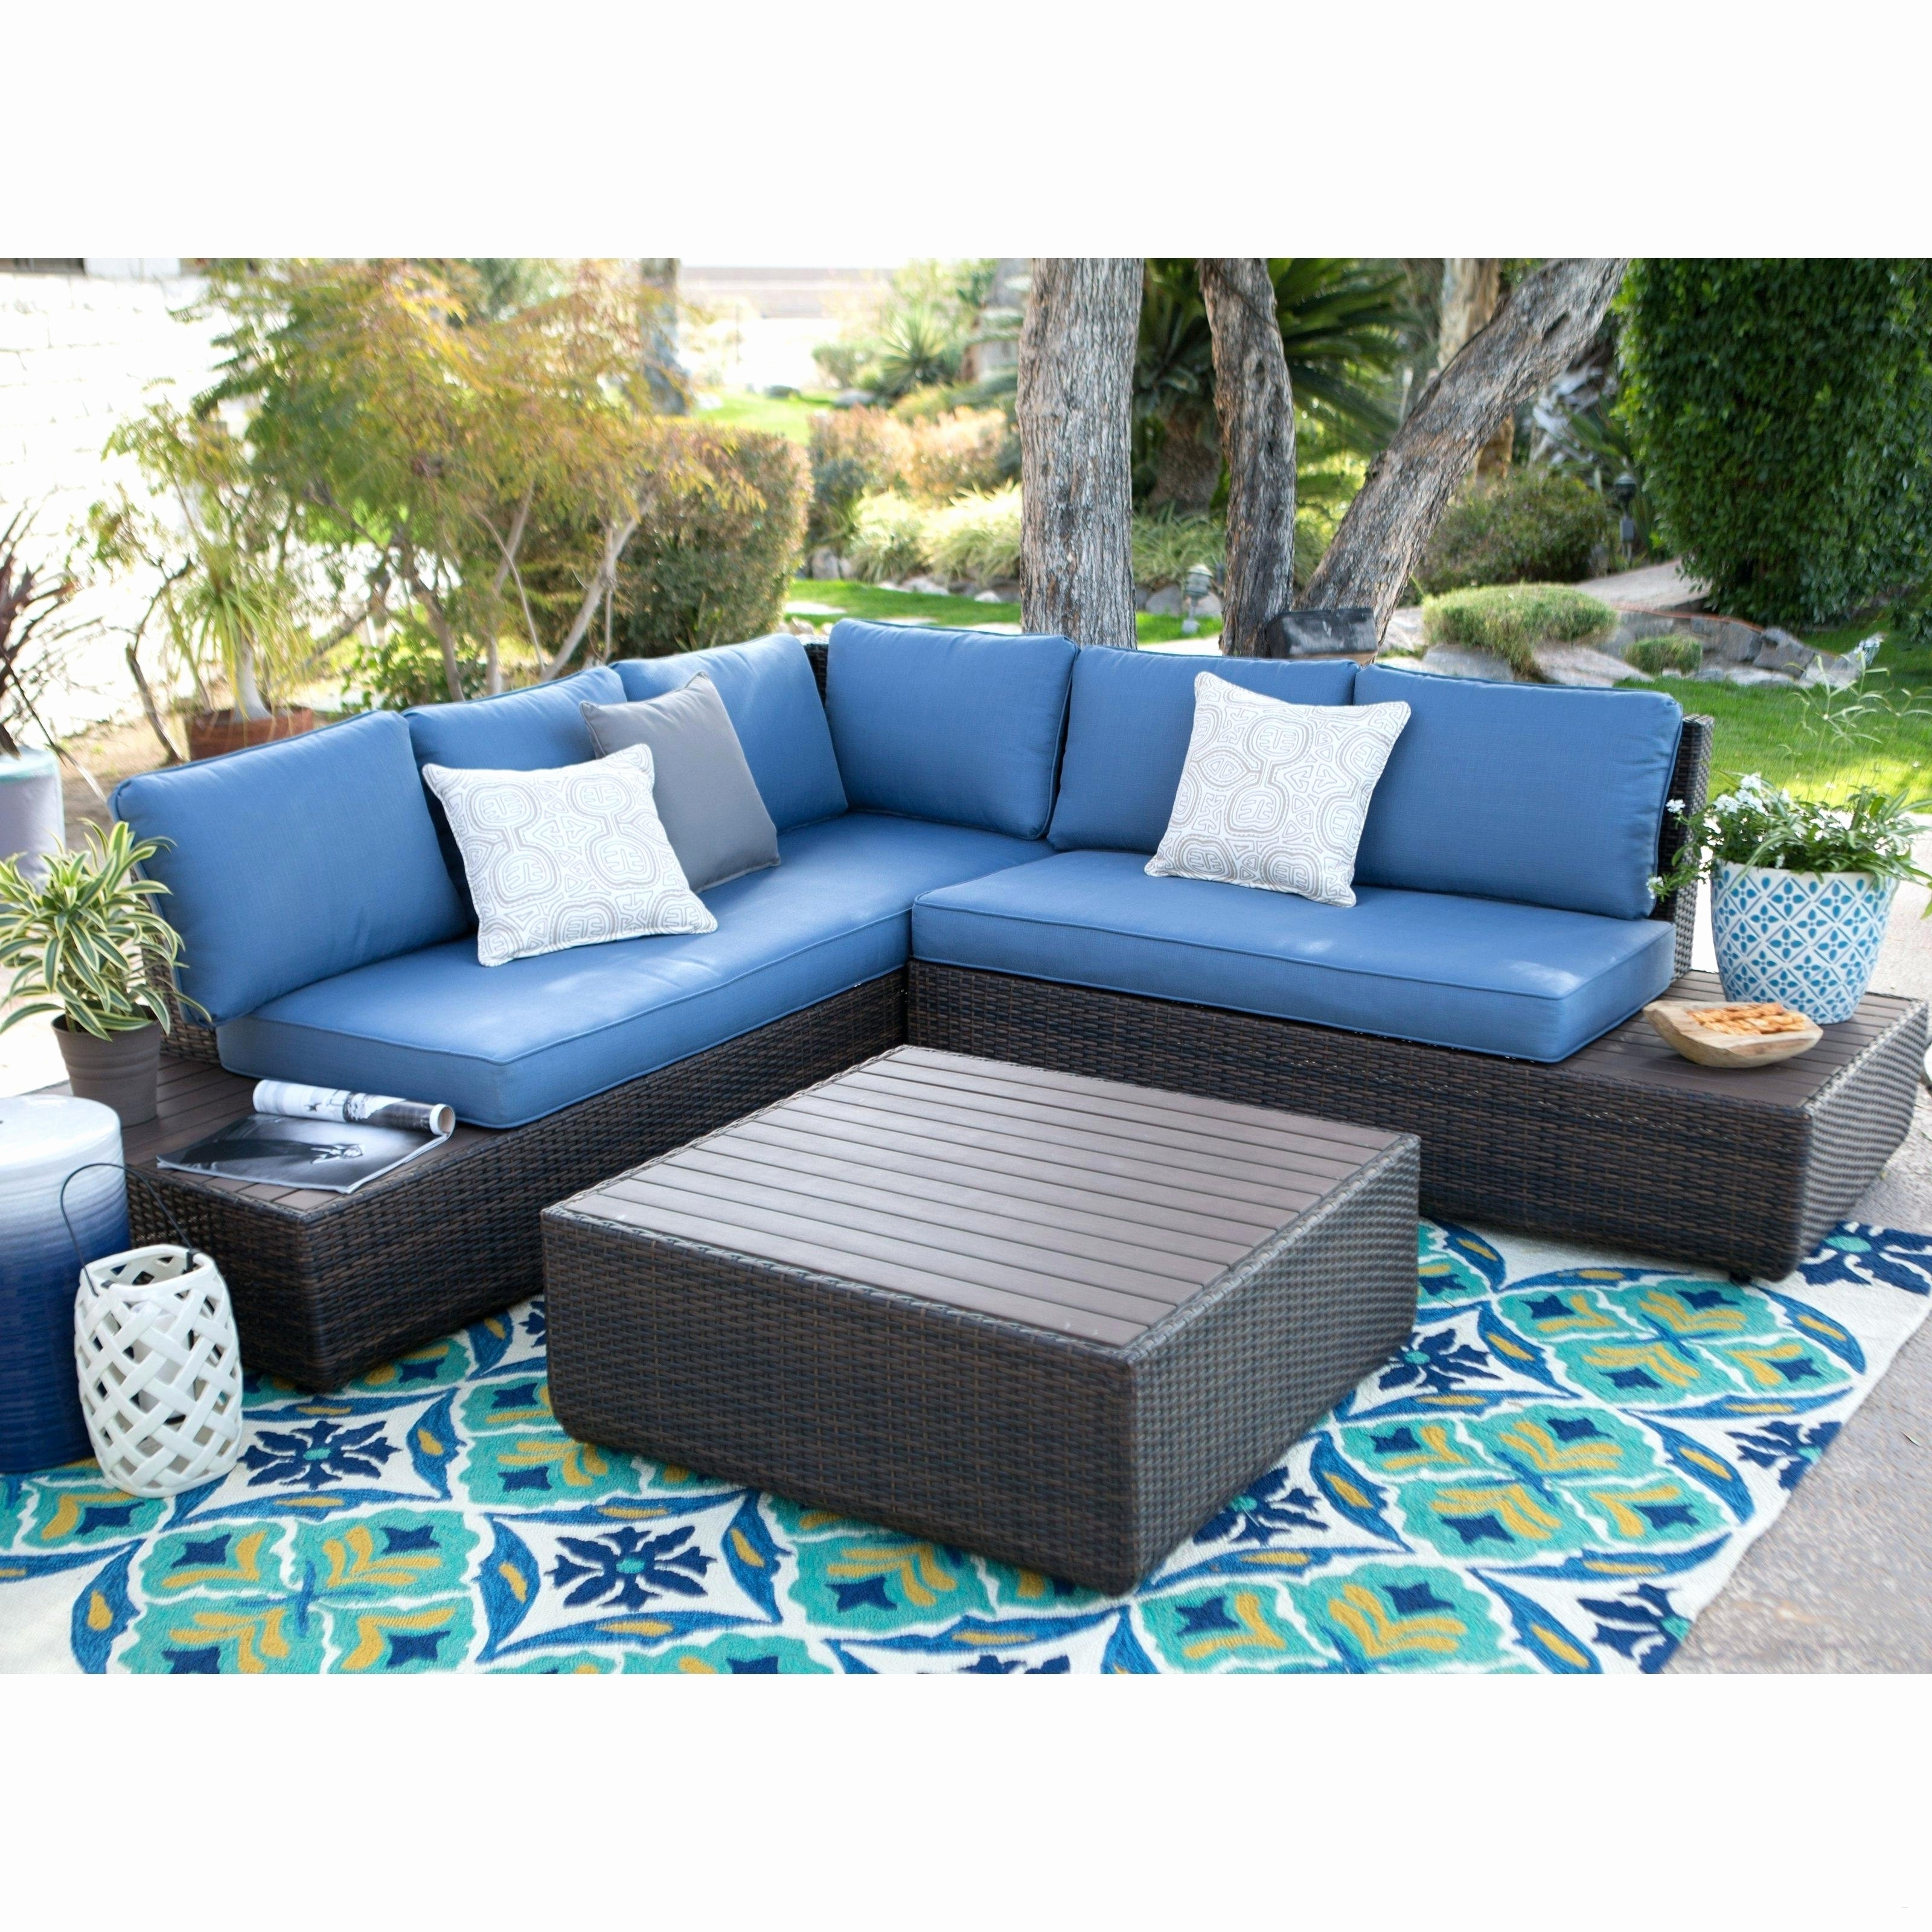 Amazon Patio Furniture Conversation Sets Throughout Latest Amazon Outdoor Furniture Awesome 27 Elegant Cheap Patio Conversation (View 3 of 20)